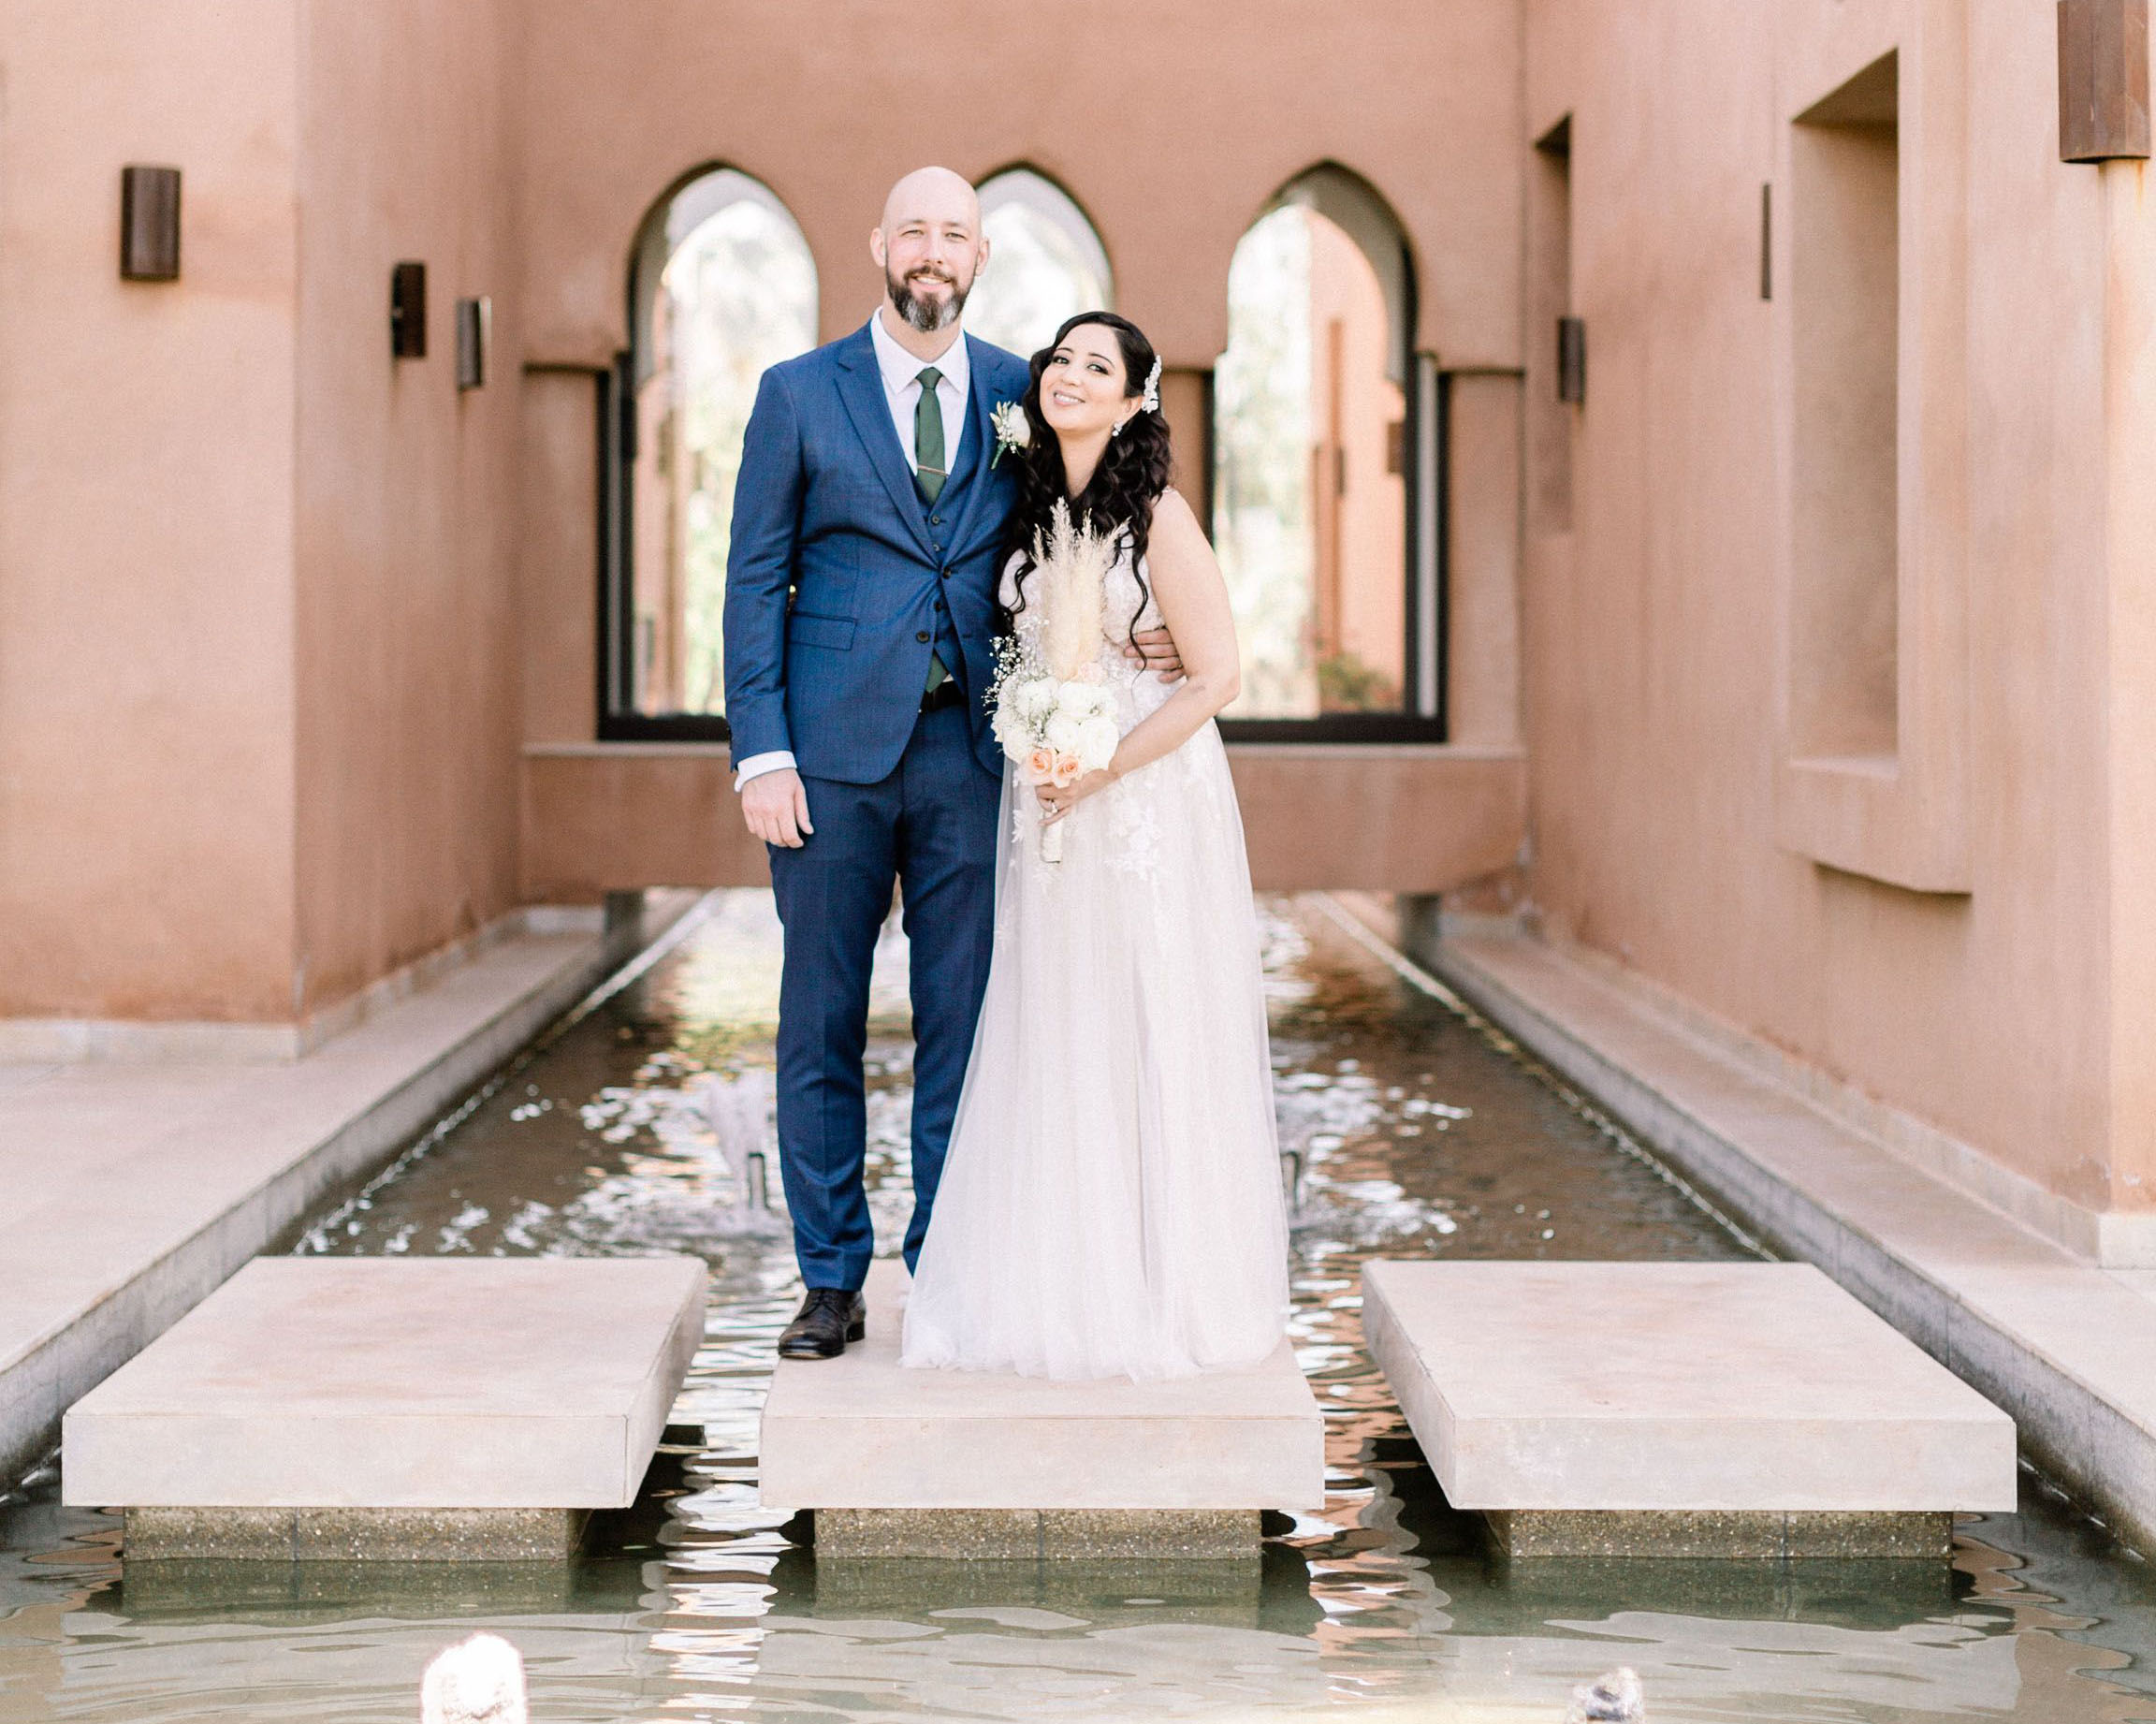 A Romantic Wedding at the Villa Dar Moucha in Morocco - Bespoke by Hello Event - The Couple 2